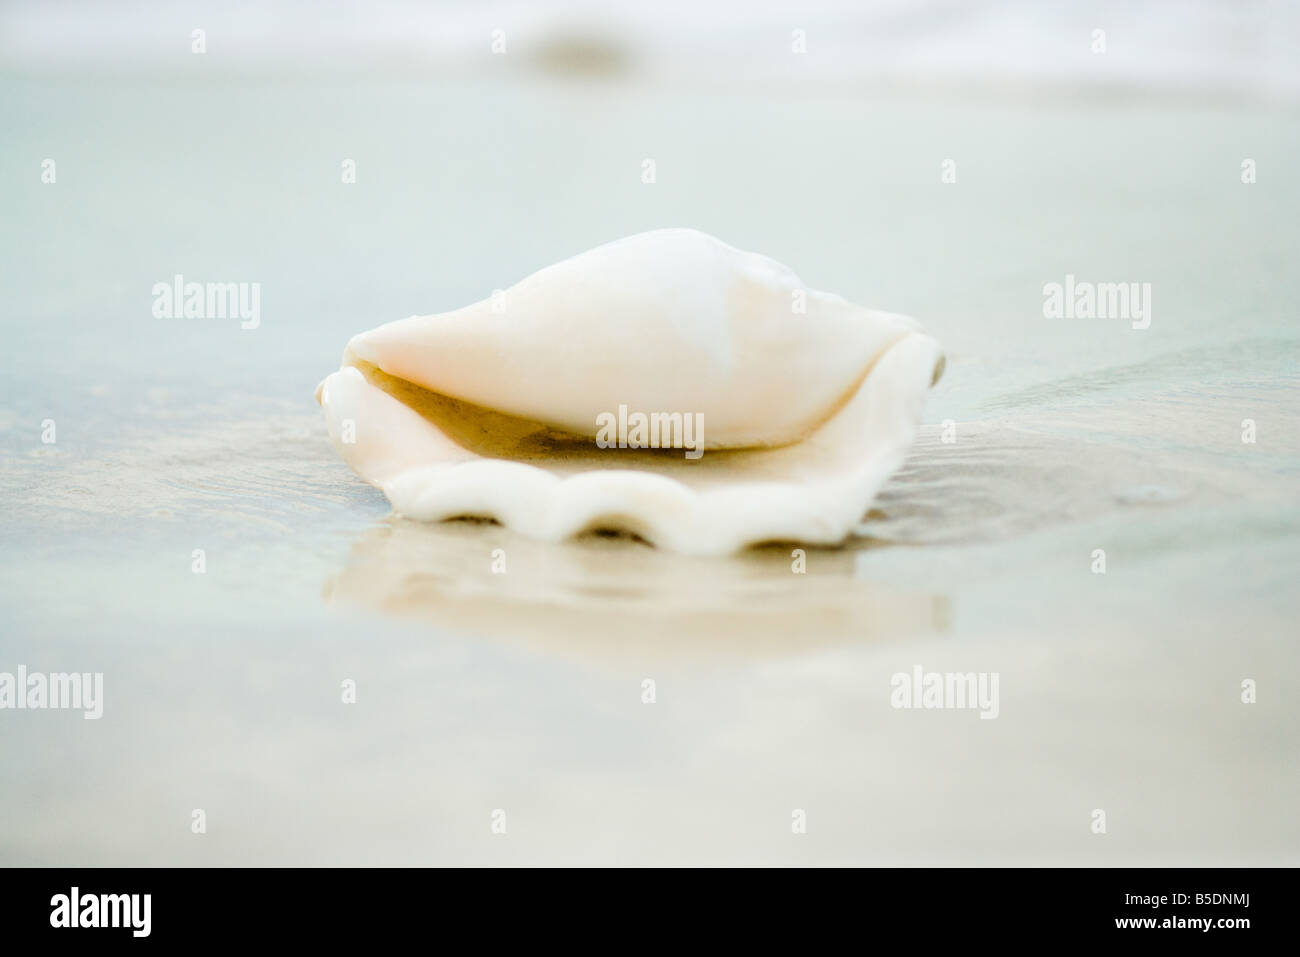 Conch shell on beach, close-up - Stock Image